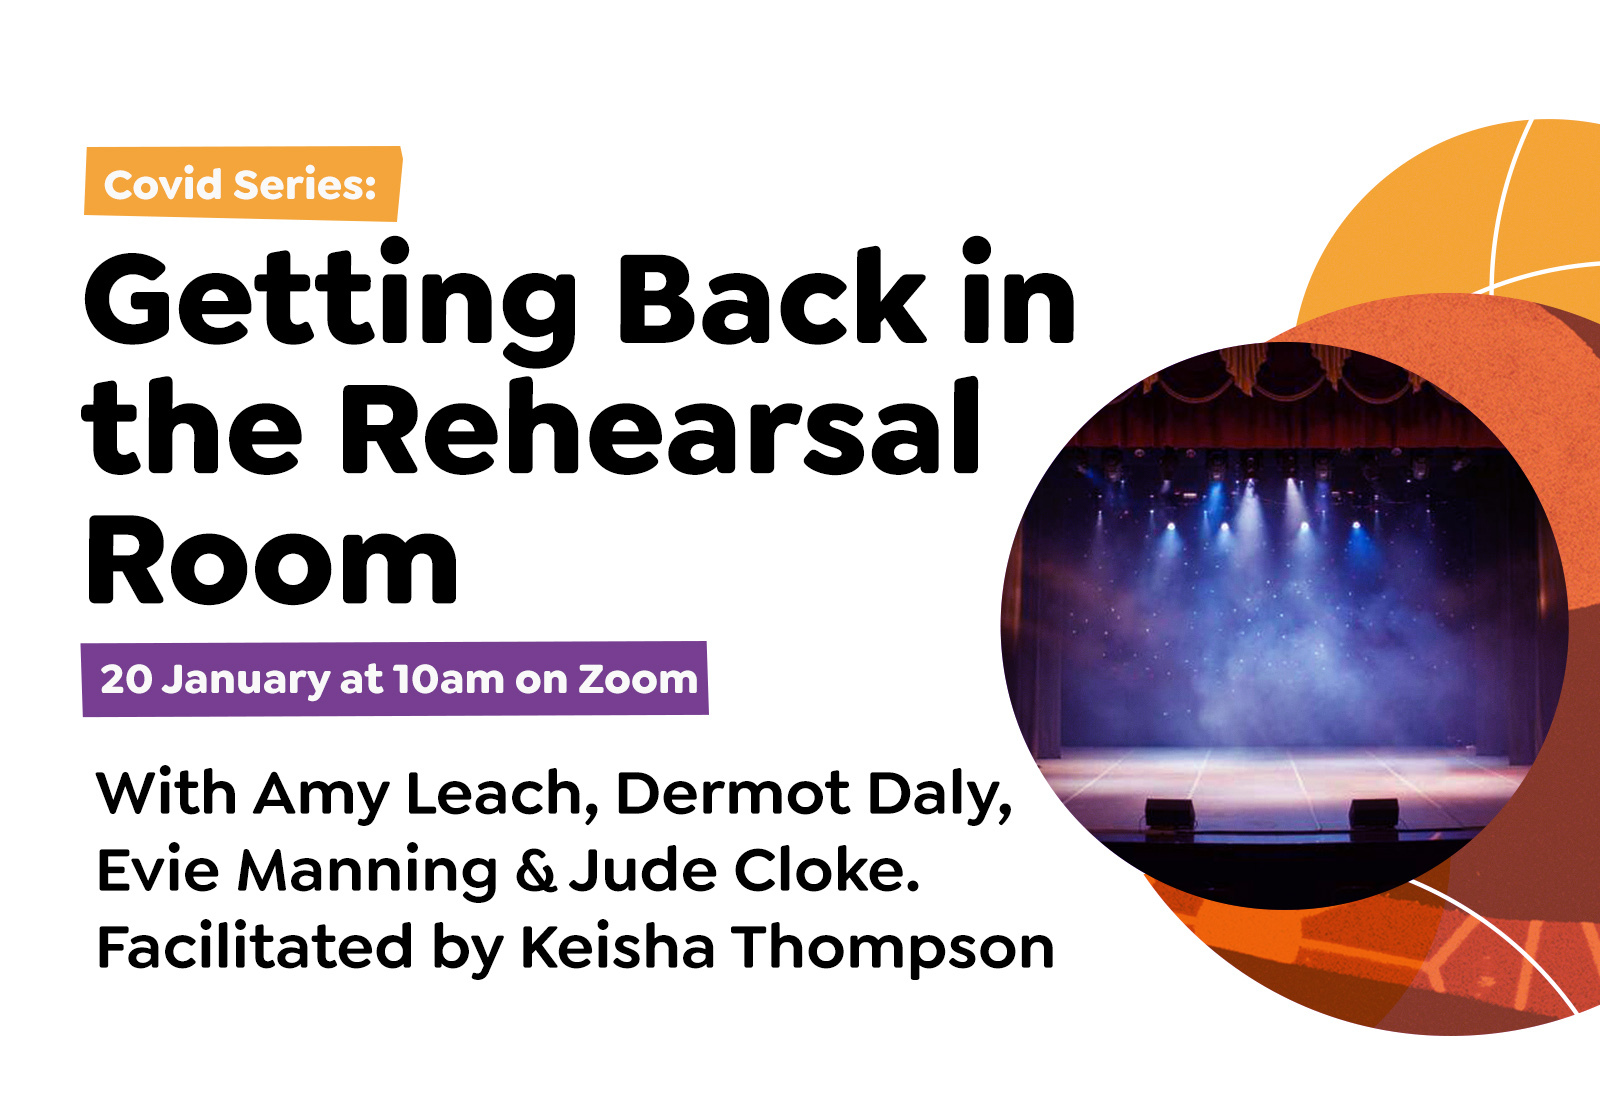 COVID Series: Getting Back in the Rehearsal Room